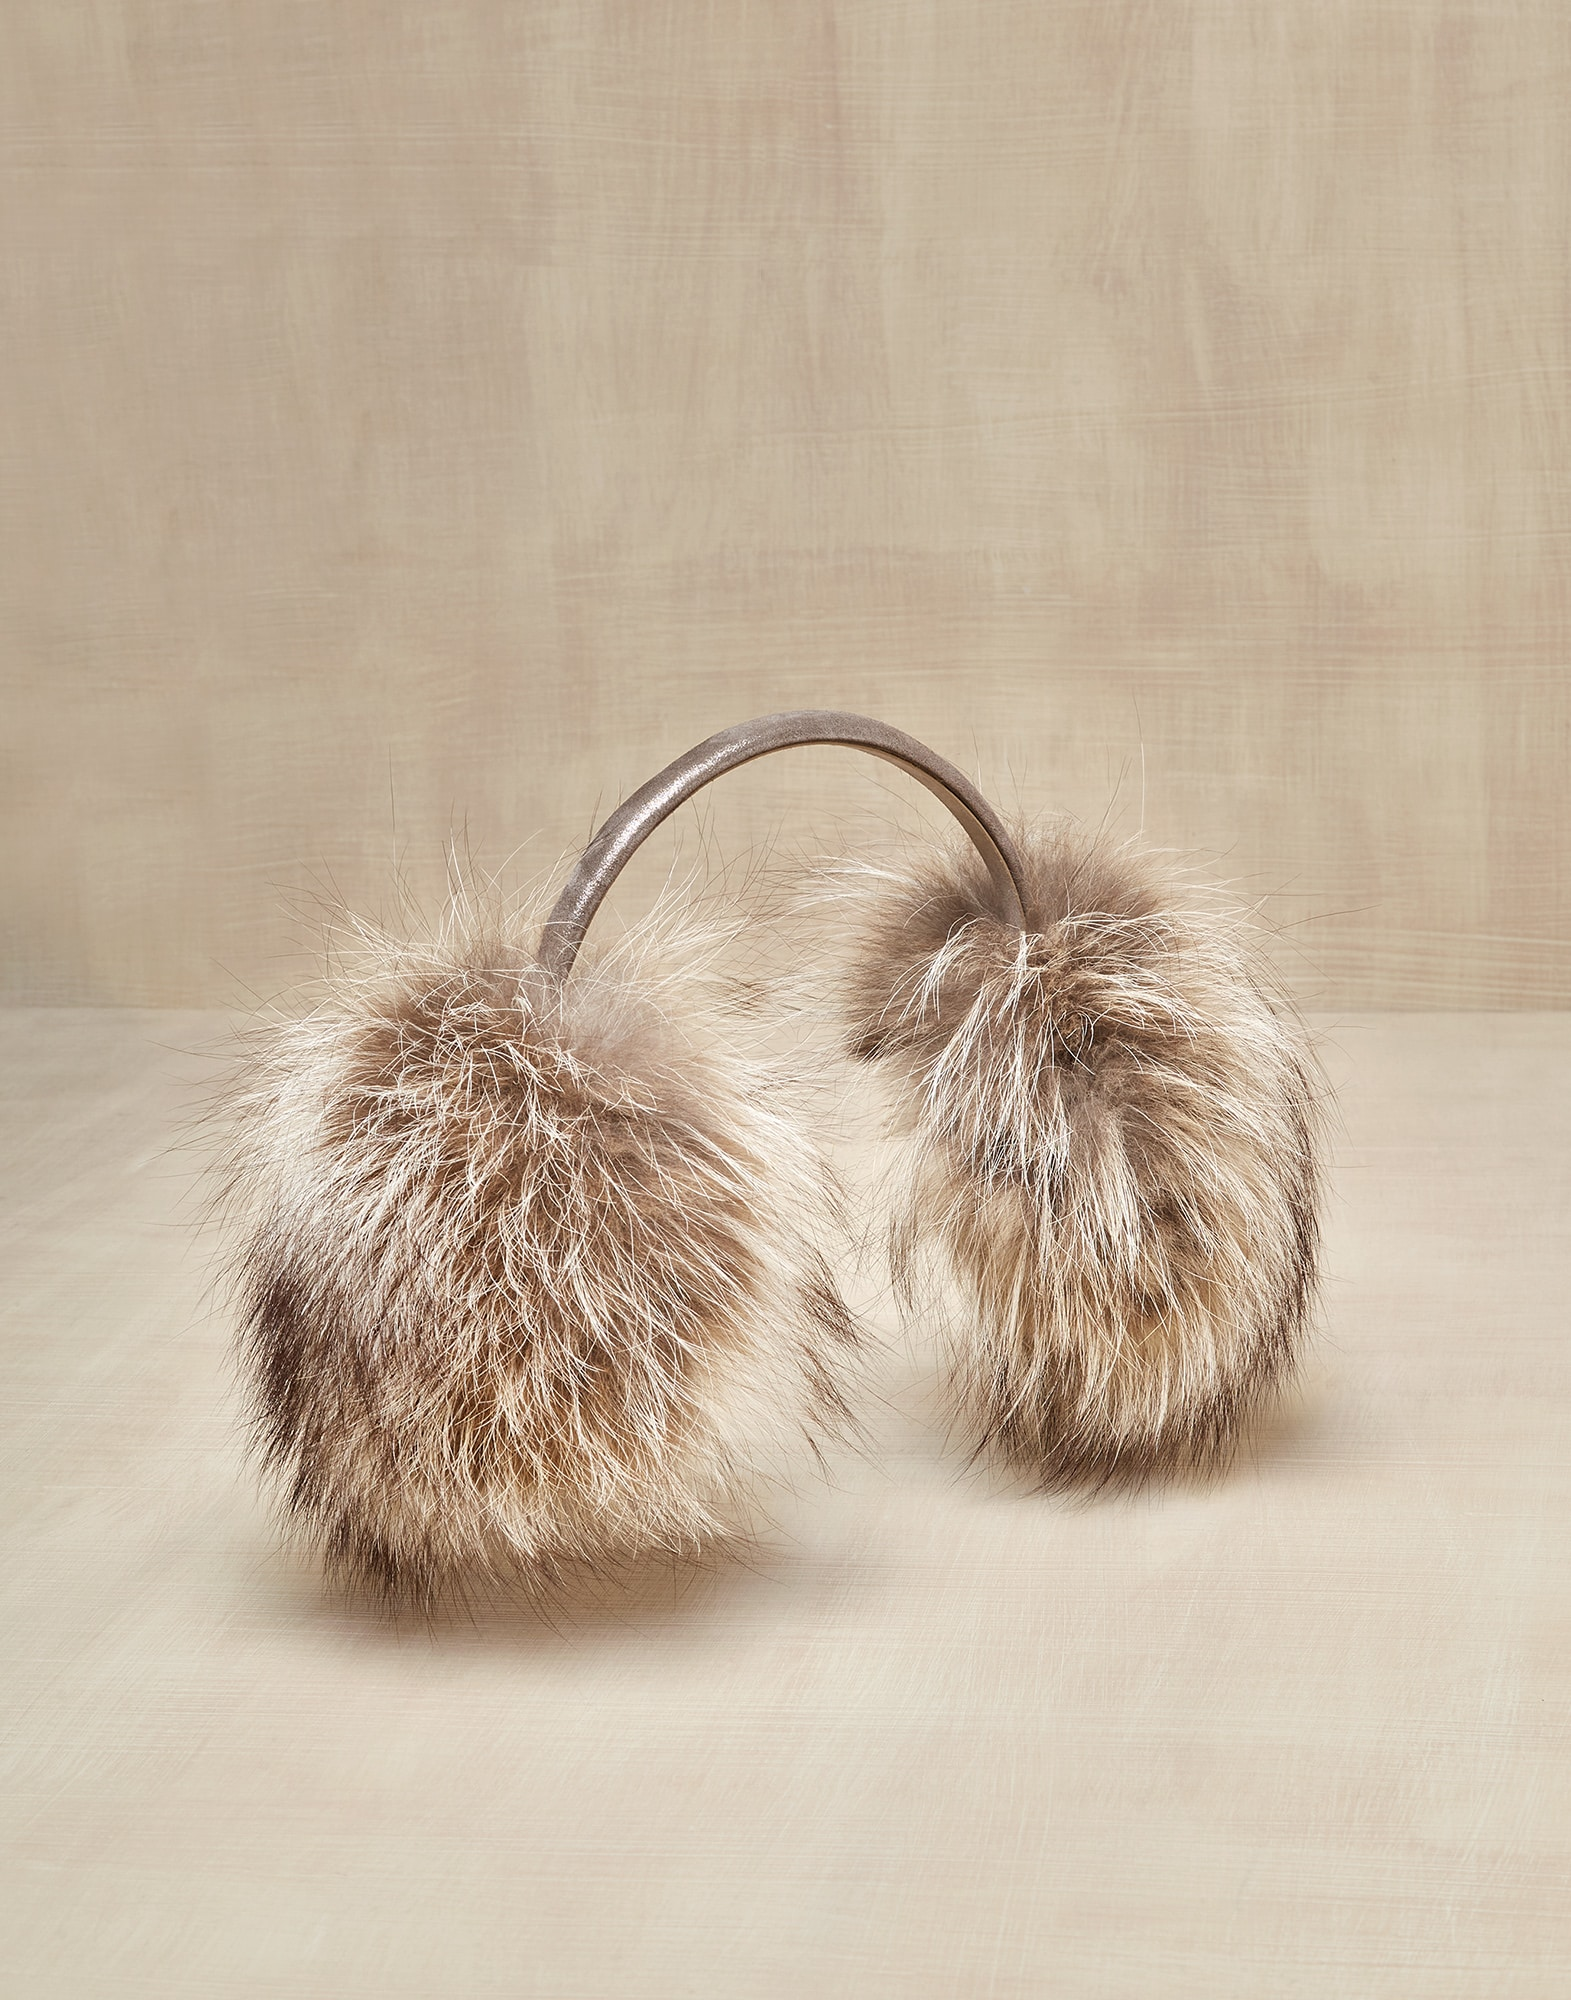 Accessories Grey Little Things 0 - Brunello Cucinelli